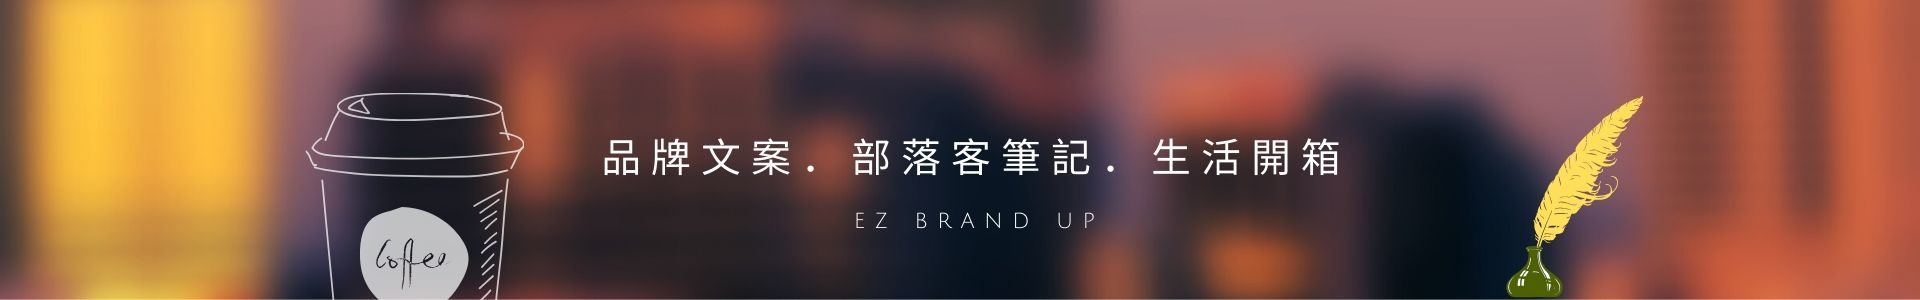 cropped-EZ-Brand-Up-Header-Banner-2020-1.3.1v-1.jpg